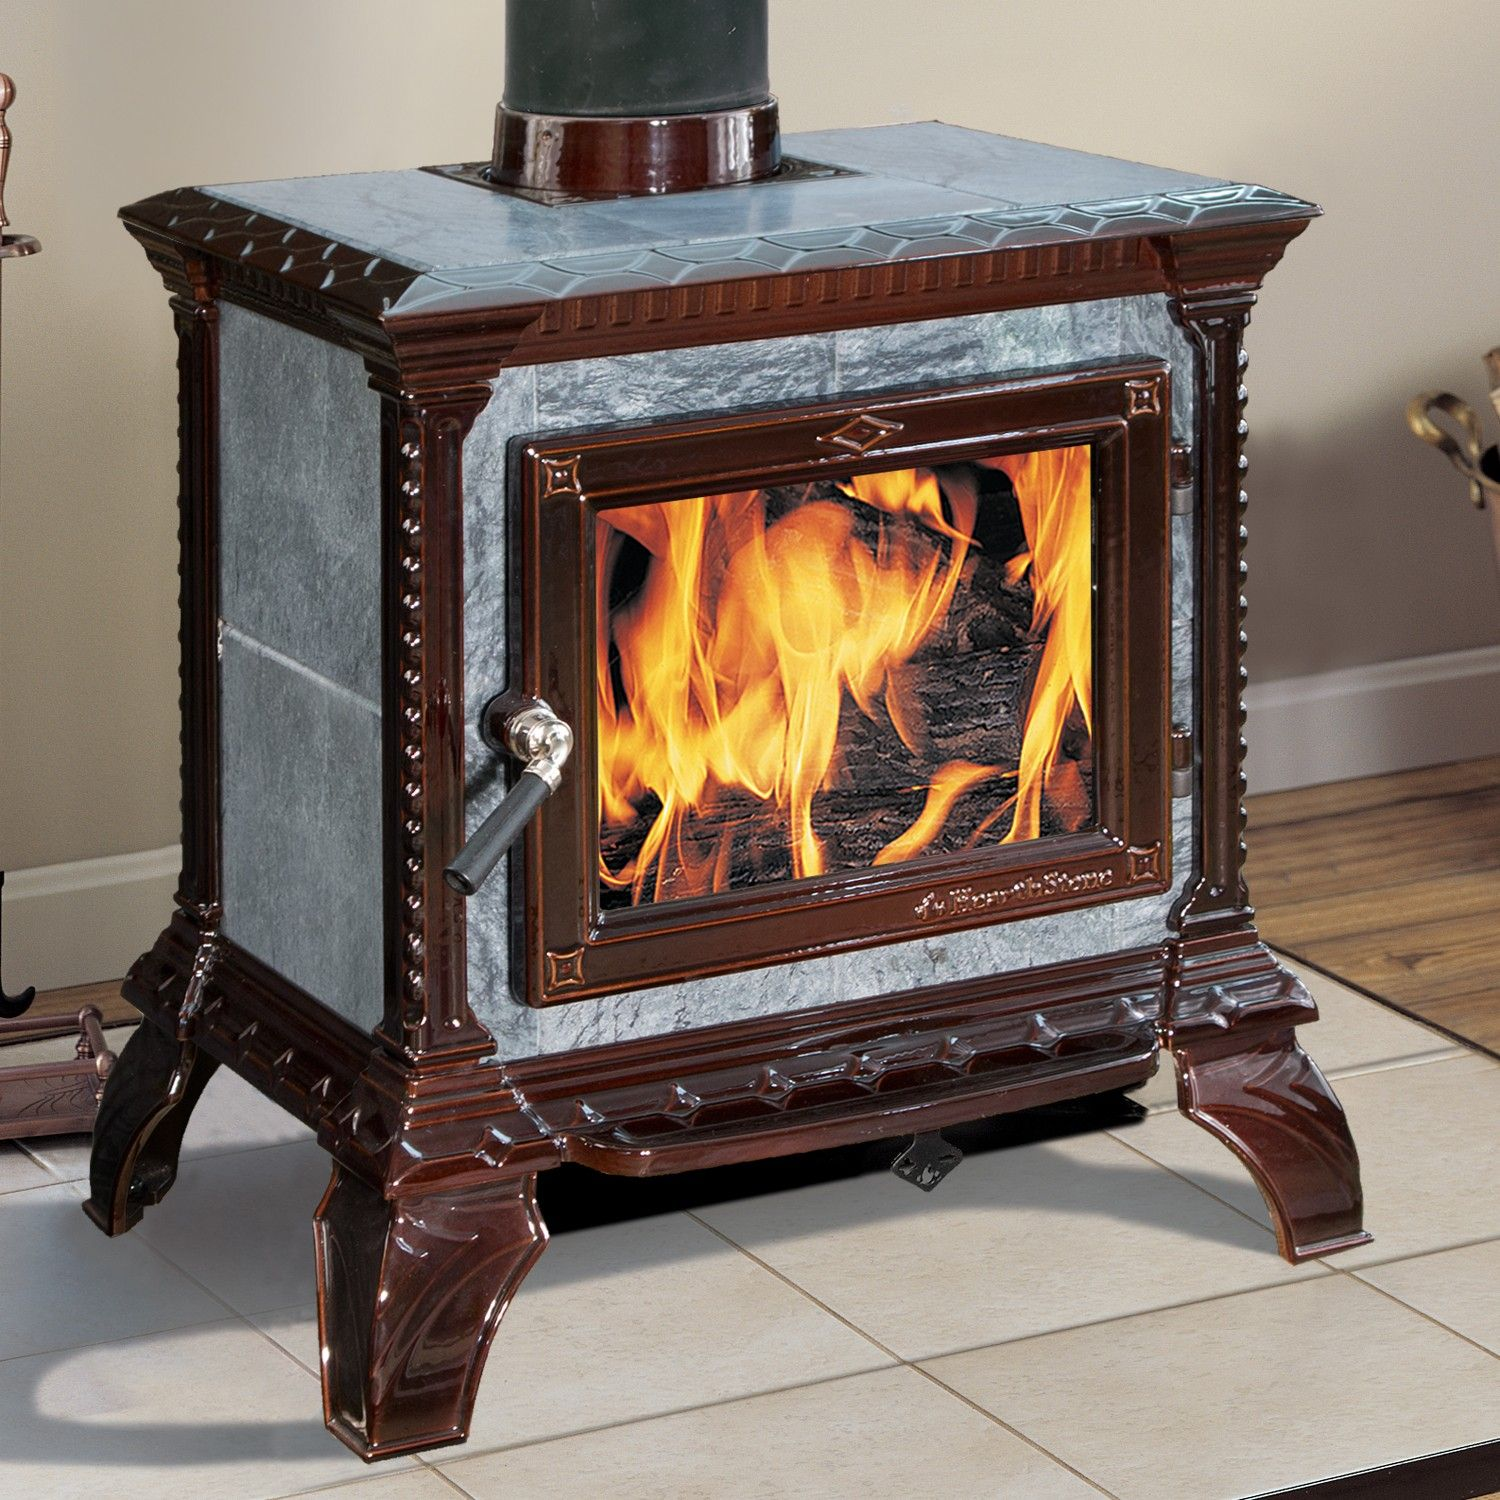 hearthstone tribute 8040 brown enamel and soapstone heats up to